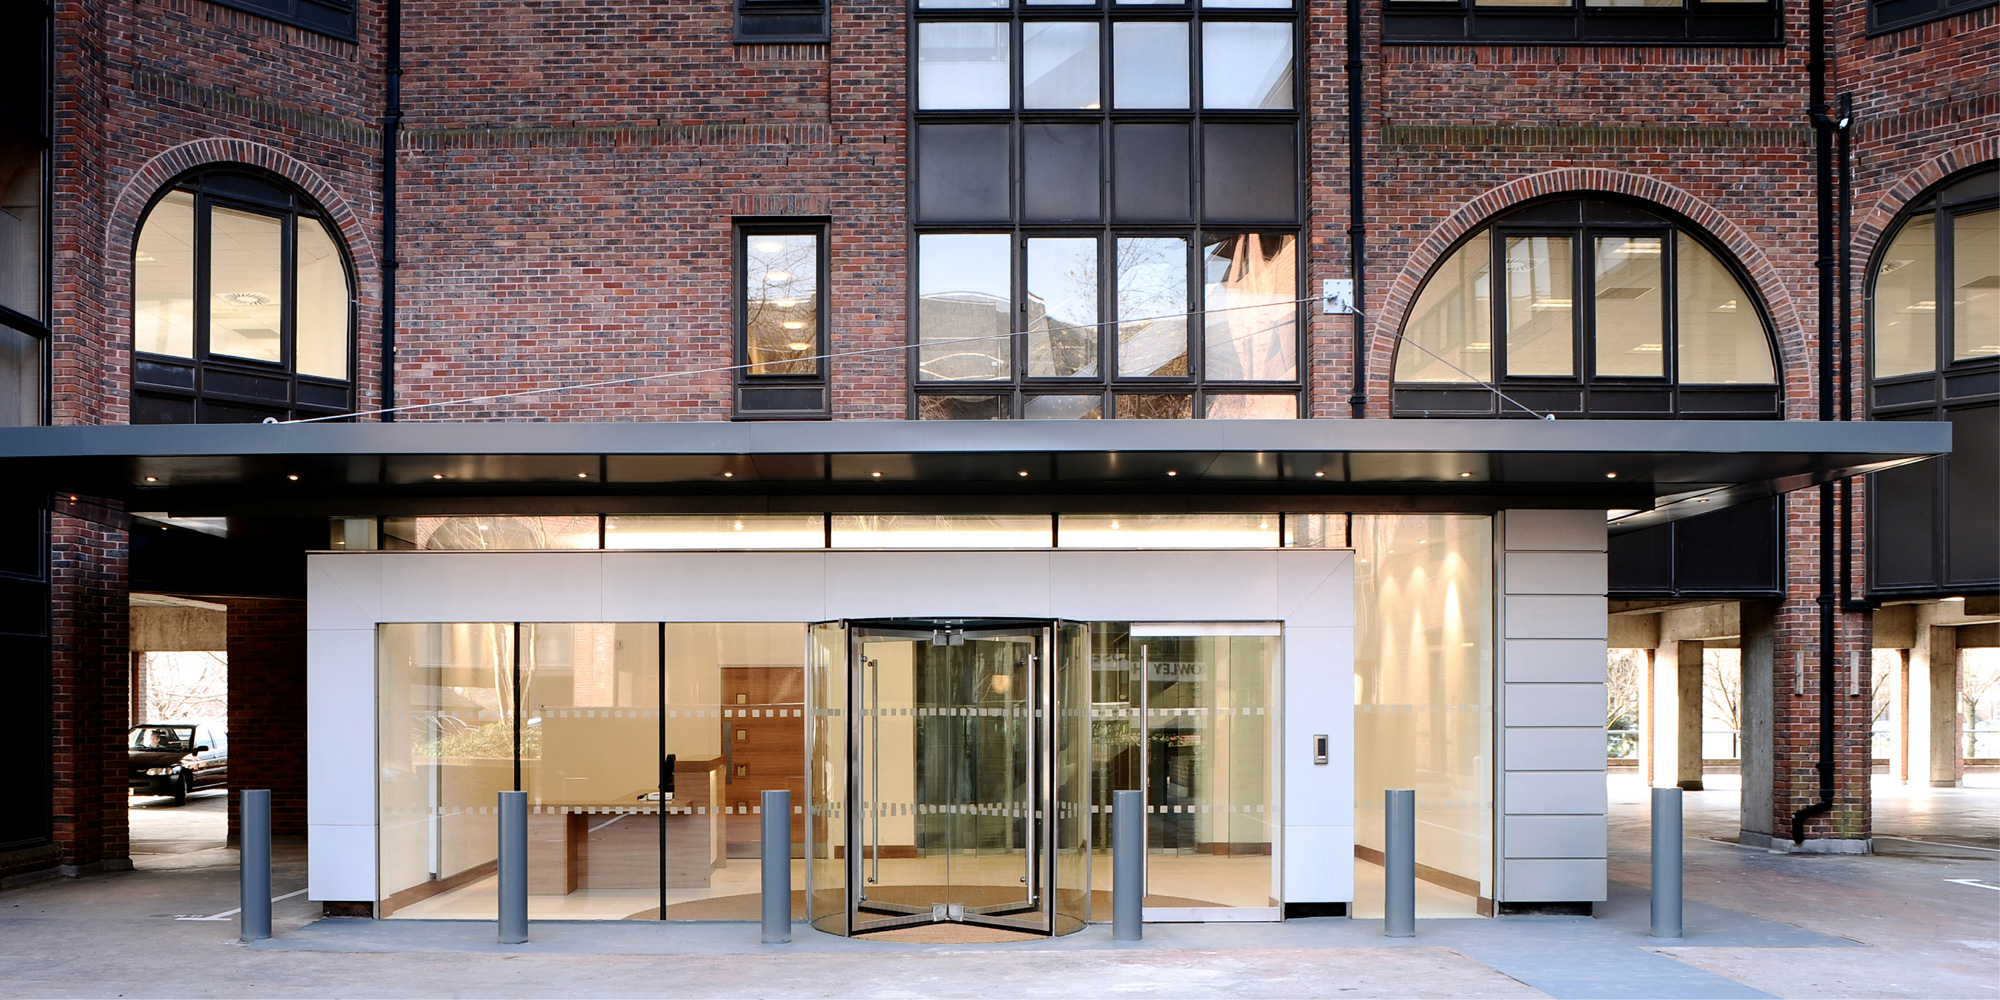 Cat A refurbishment including reception - remodelled entrance using steel, glass and zinc cladding